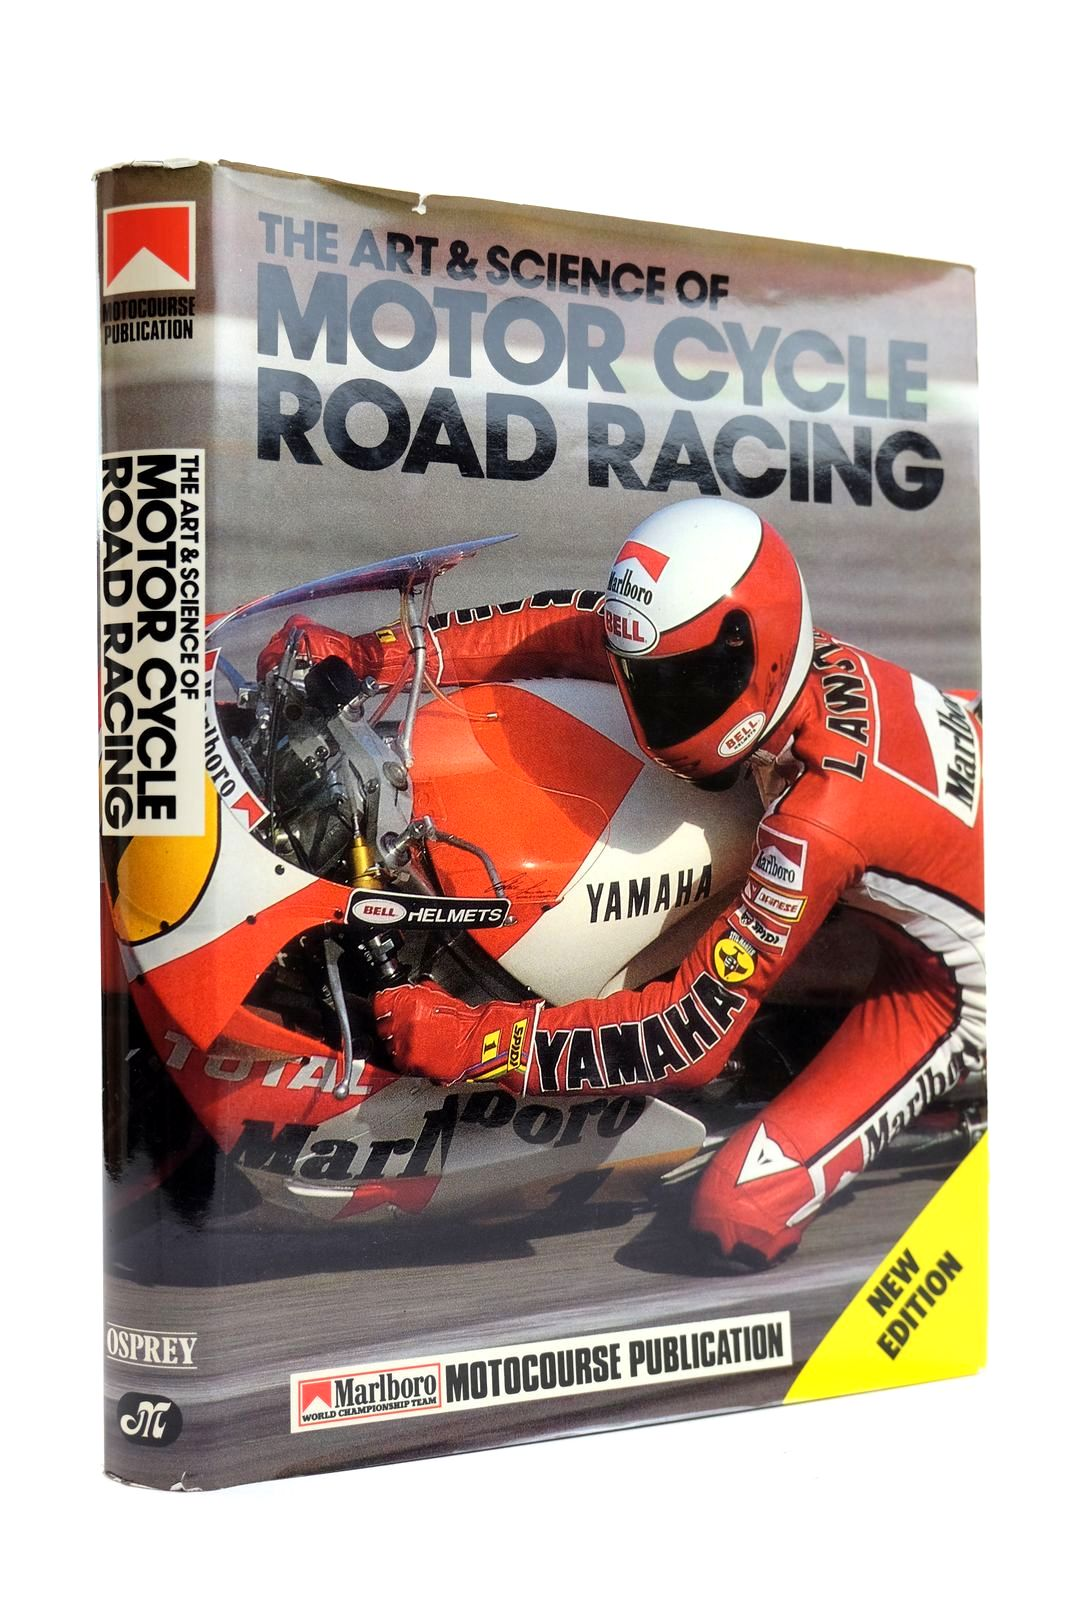 Photo of THE ART AND SCIENCE OF MOTOR CYCLE ROAD RACING written by Clifford, Peter published by Hazleton Publishing (STOCK CODE: 2131875)  for sale by Stella & Rose's Books